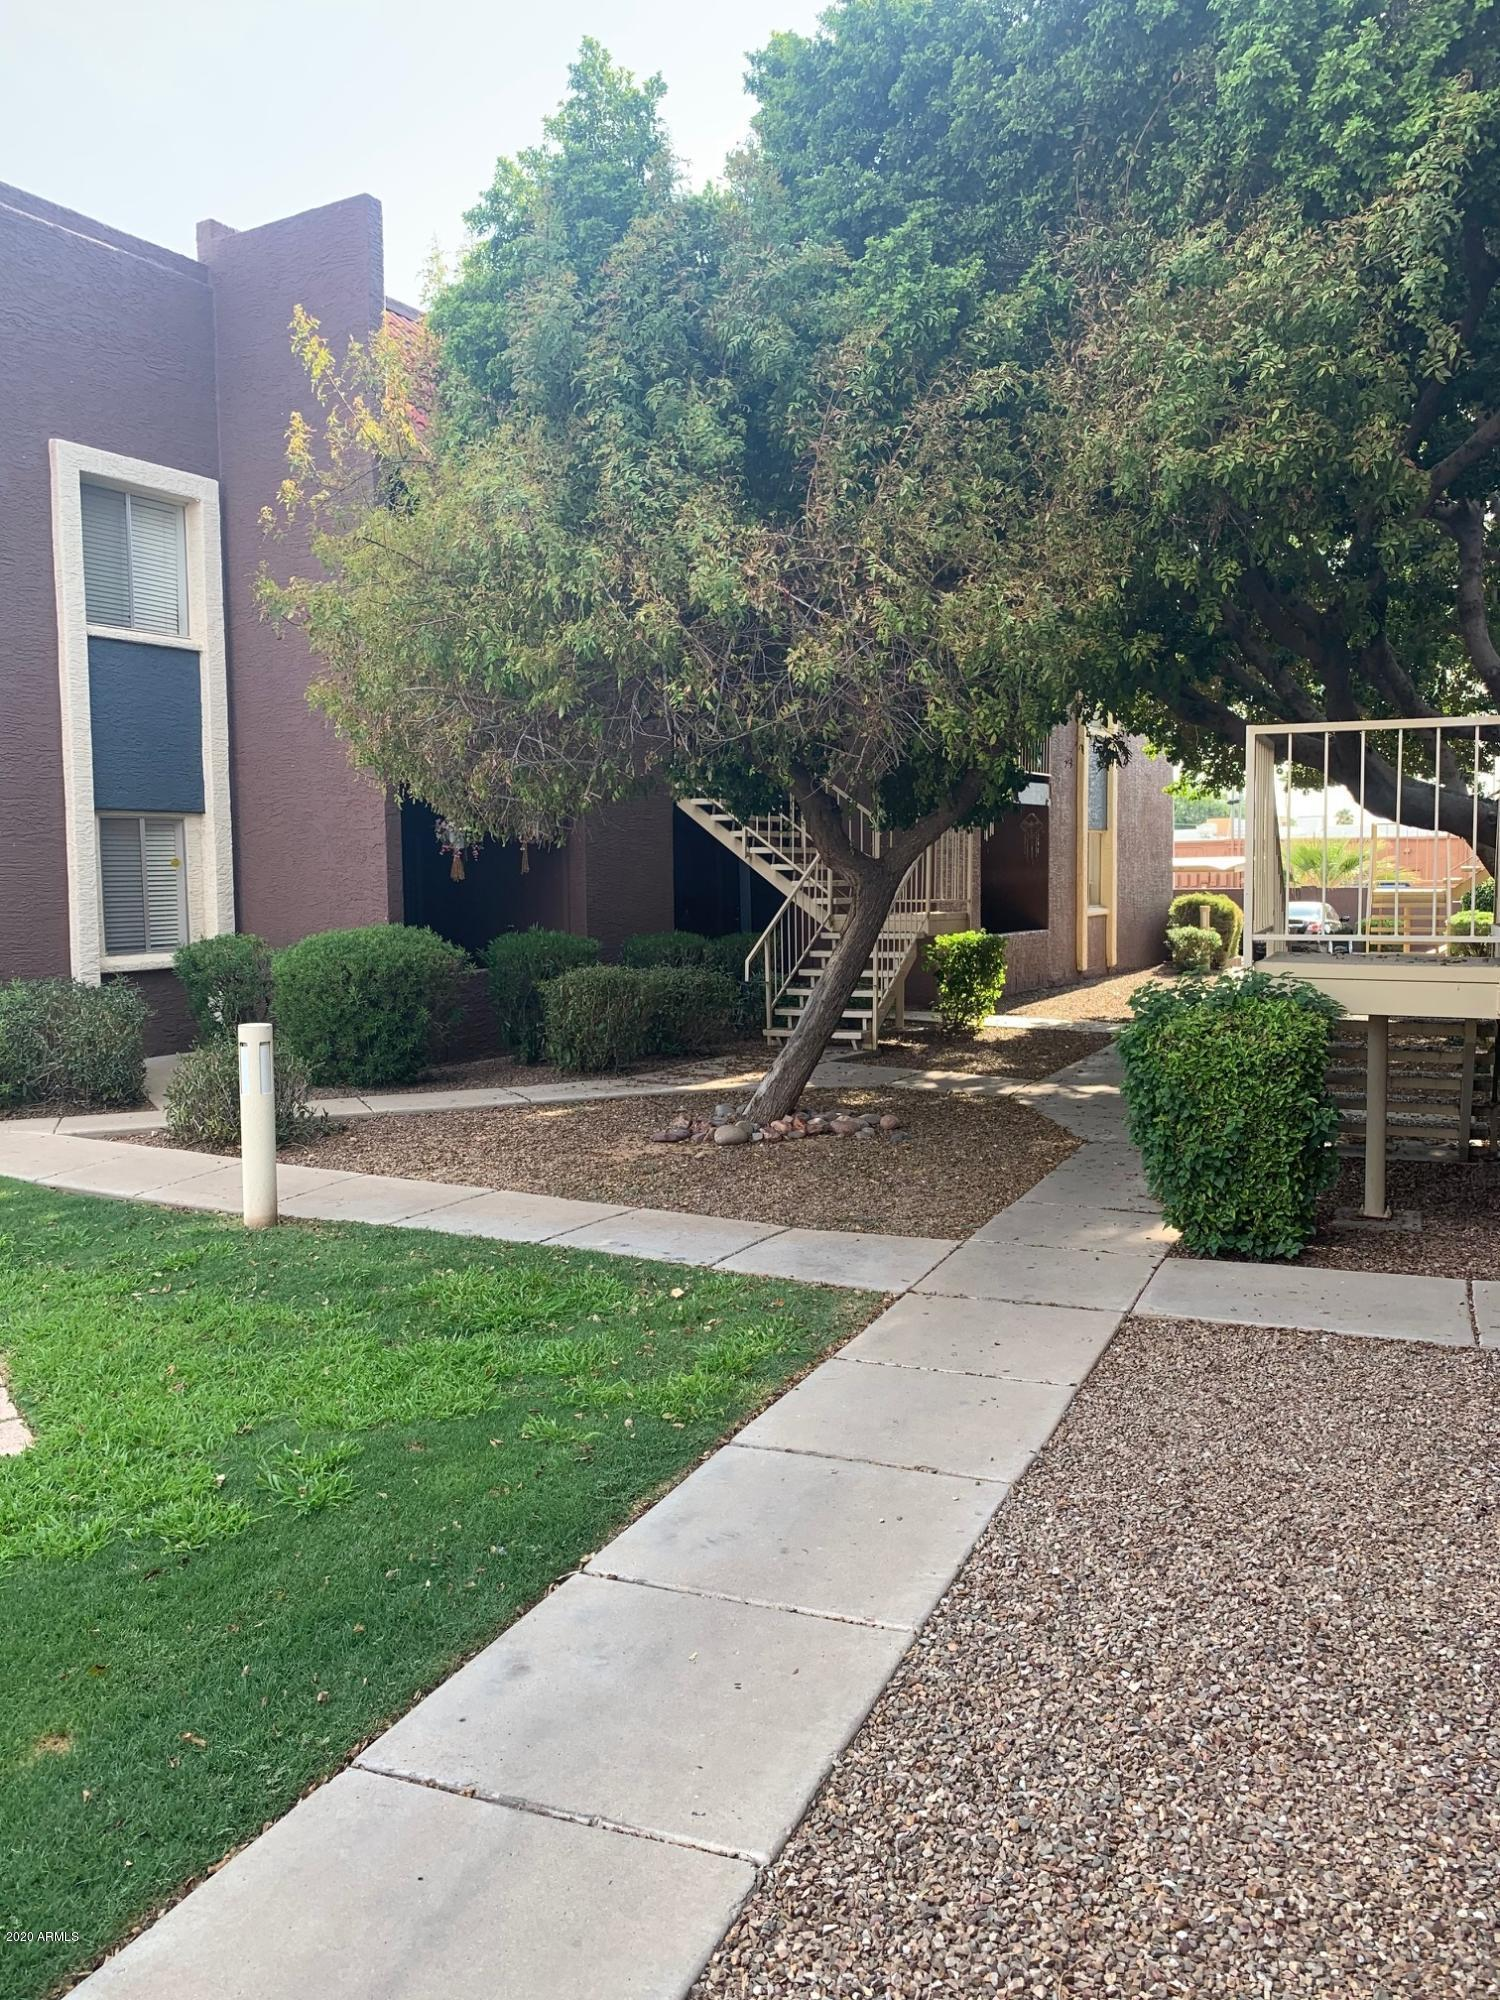 16602 N 25TH Phoenix, AZ 85032 Photo #1